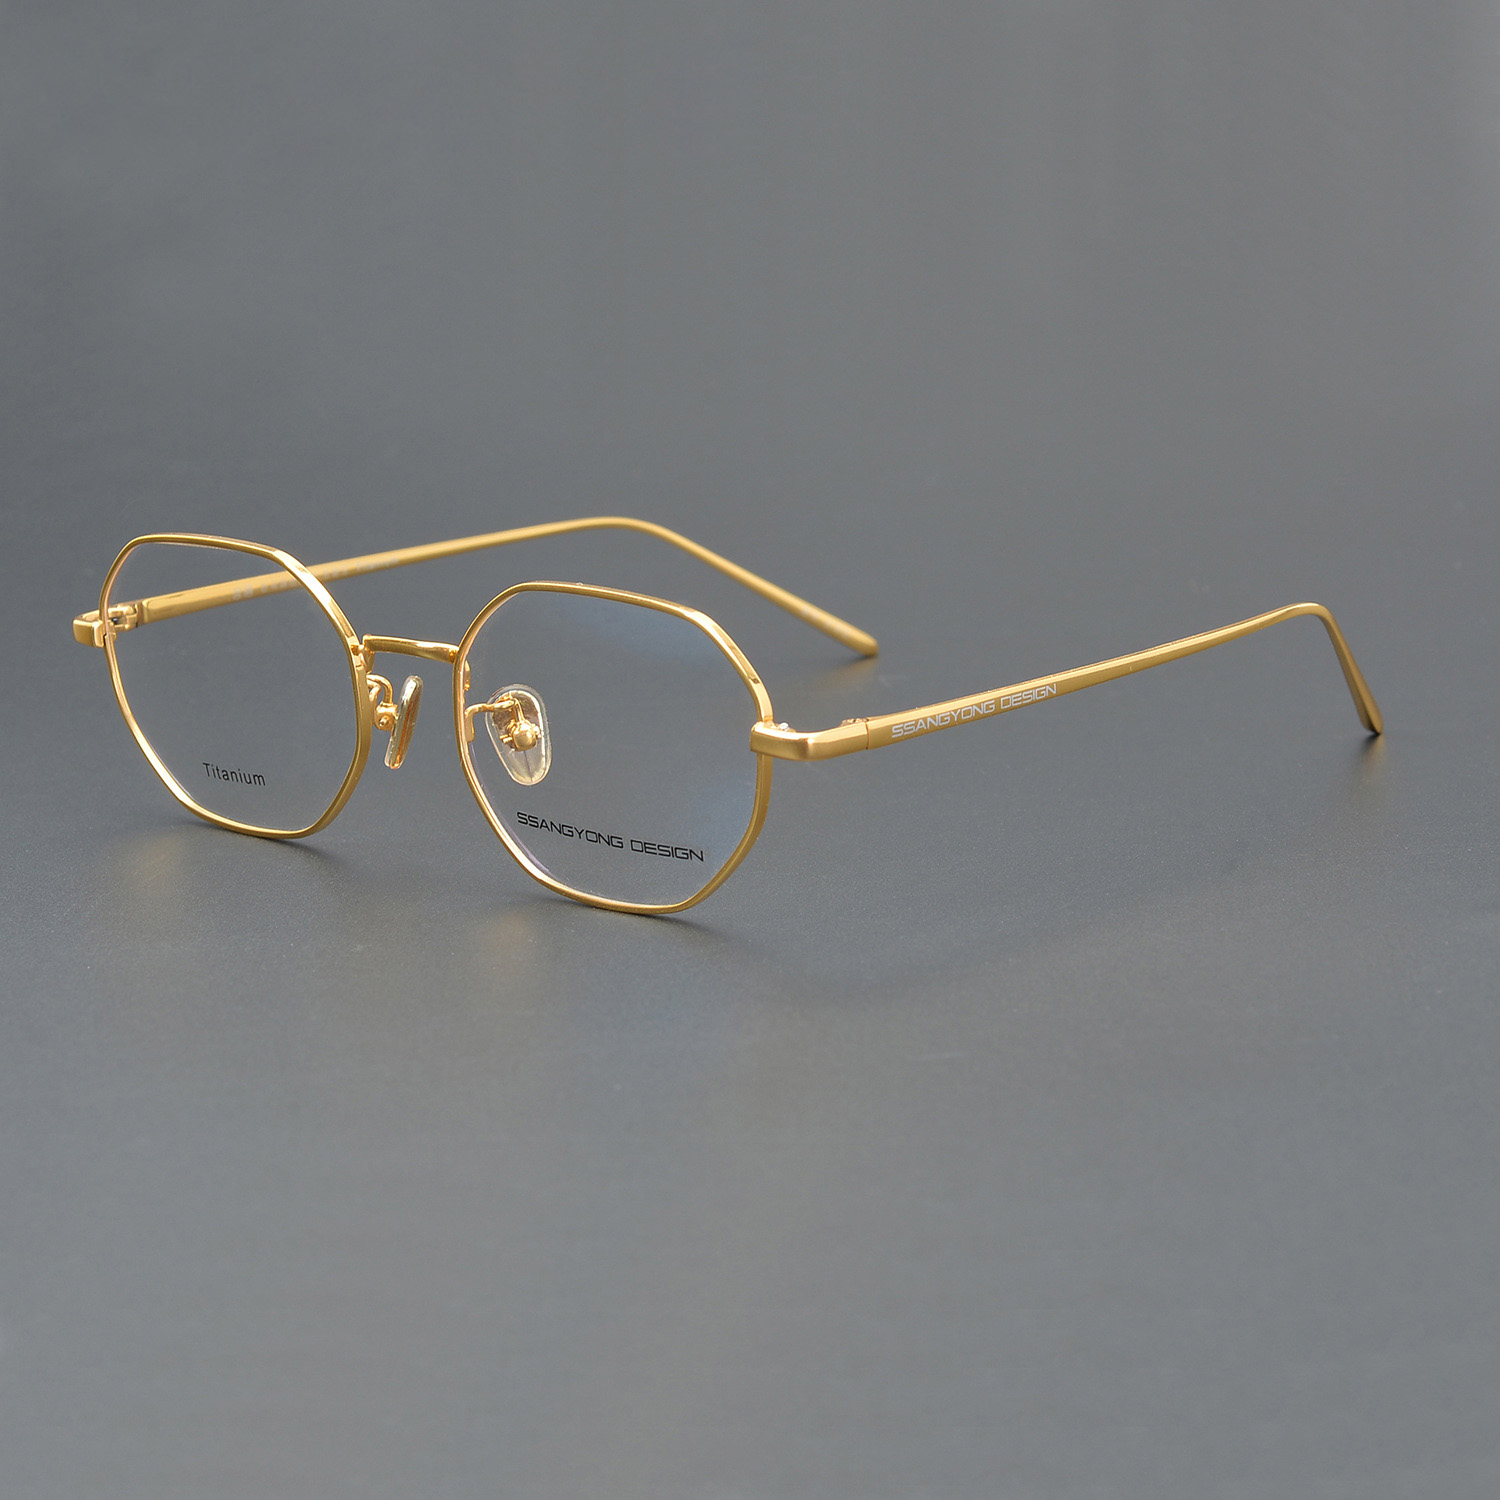 Pure Titanium Eyeglasses Men Women Unisex Gold Polygon Glasses Frame Man Fashion Clear Lens Spectacles Prescription Optic Nerd